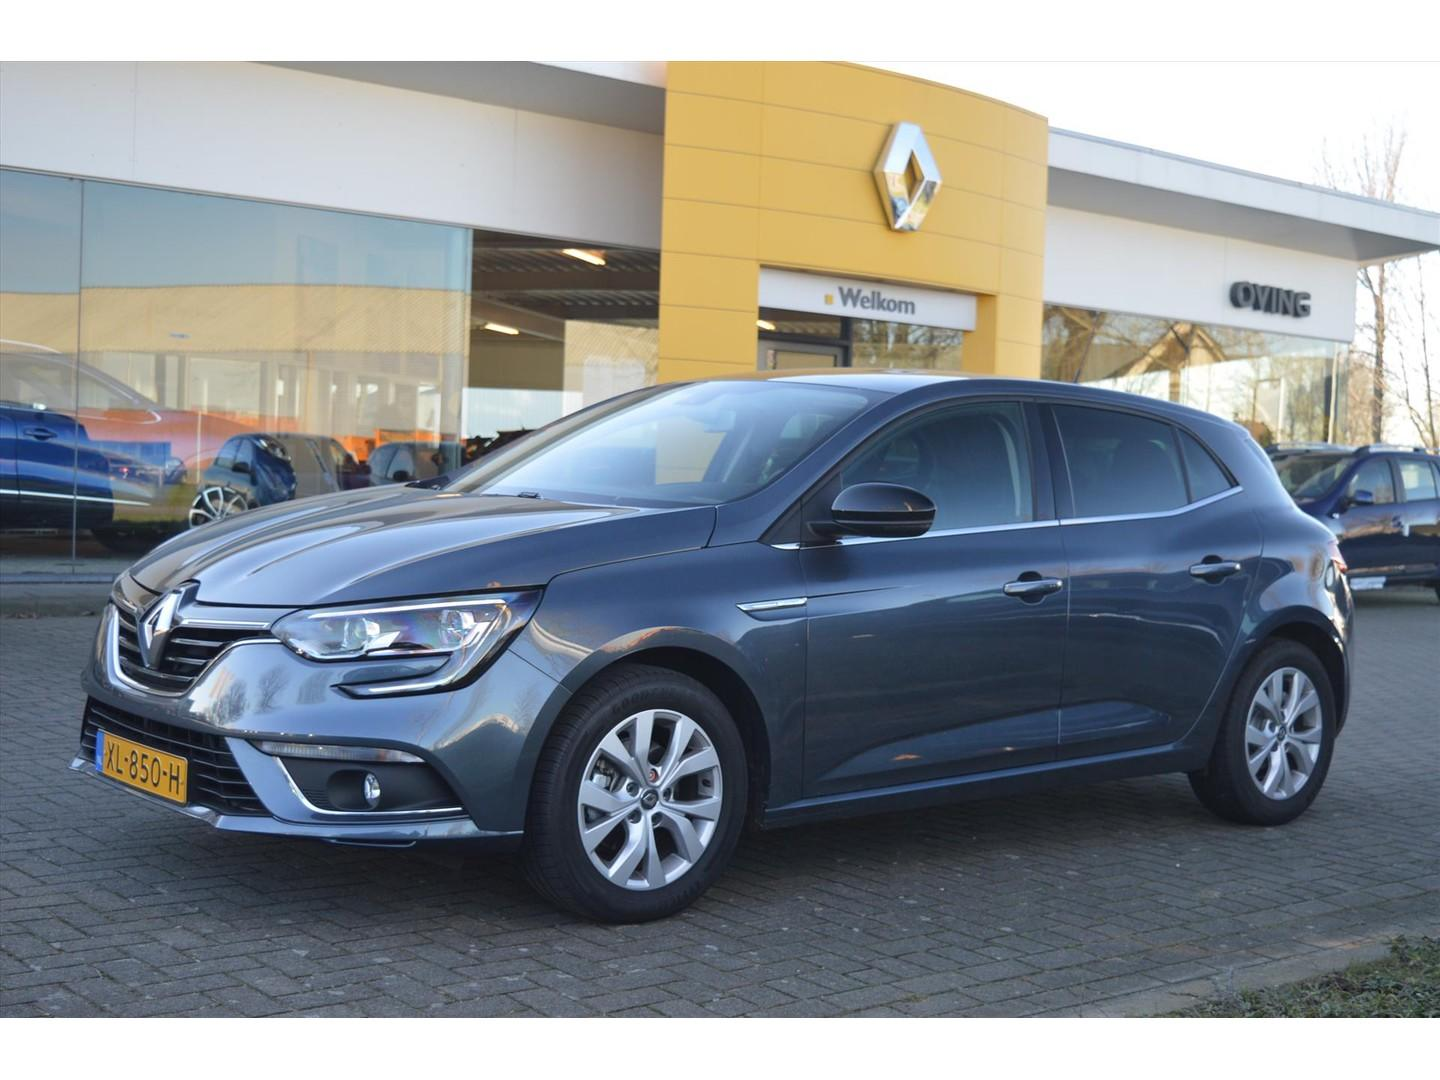 Renault Mégane Hatchback 1.3 energy tce 115pk limited